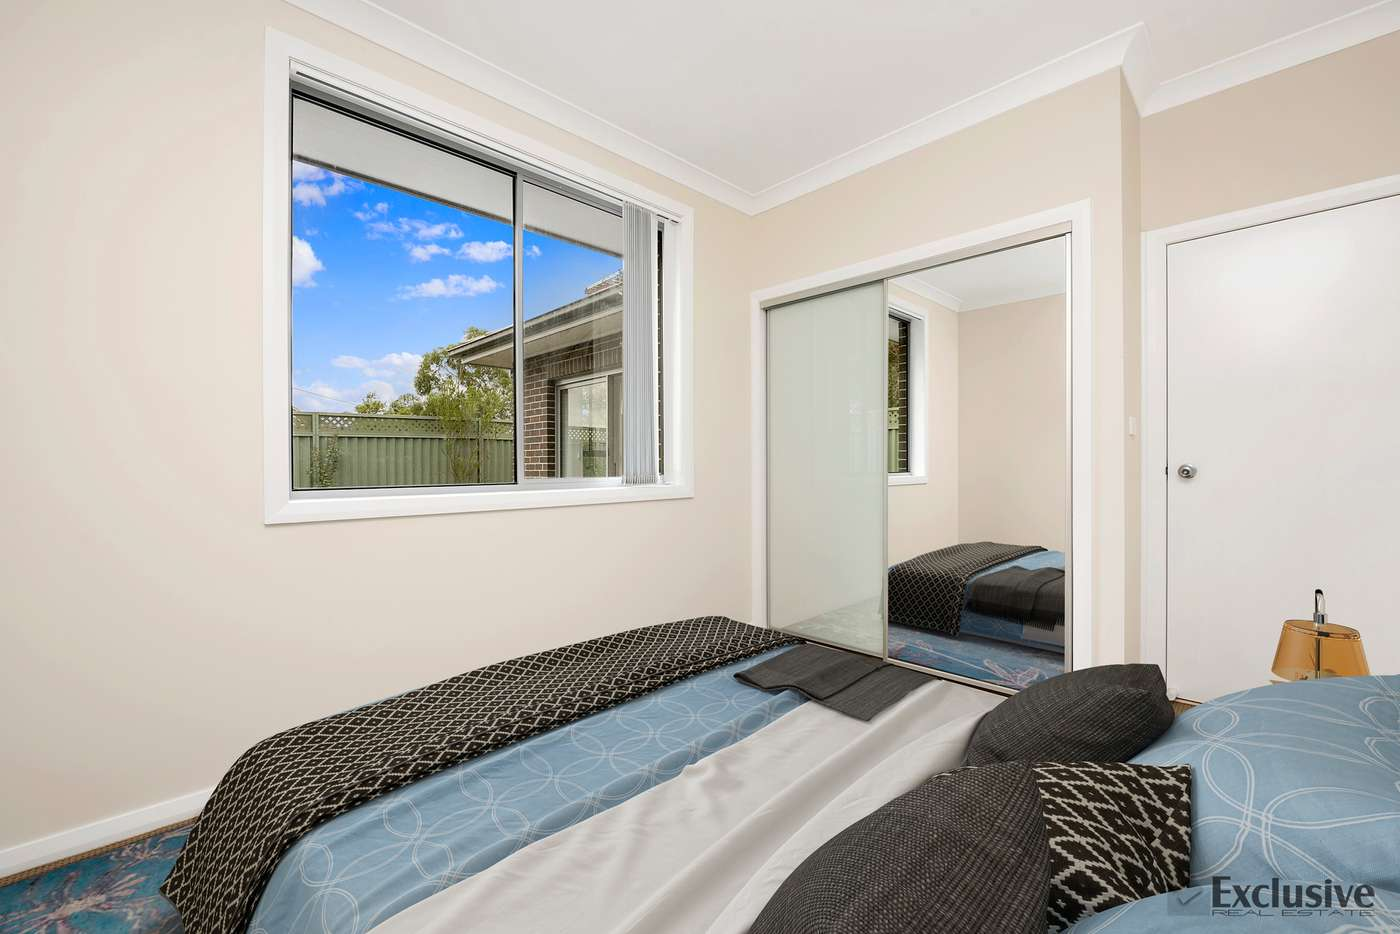 Fifth view of Homely villa listing, 16/46-48 O'Brien Street, Mount Druitt NSW 2770